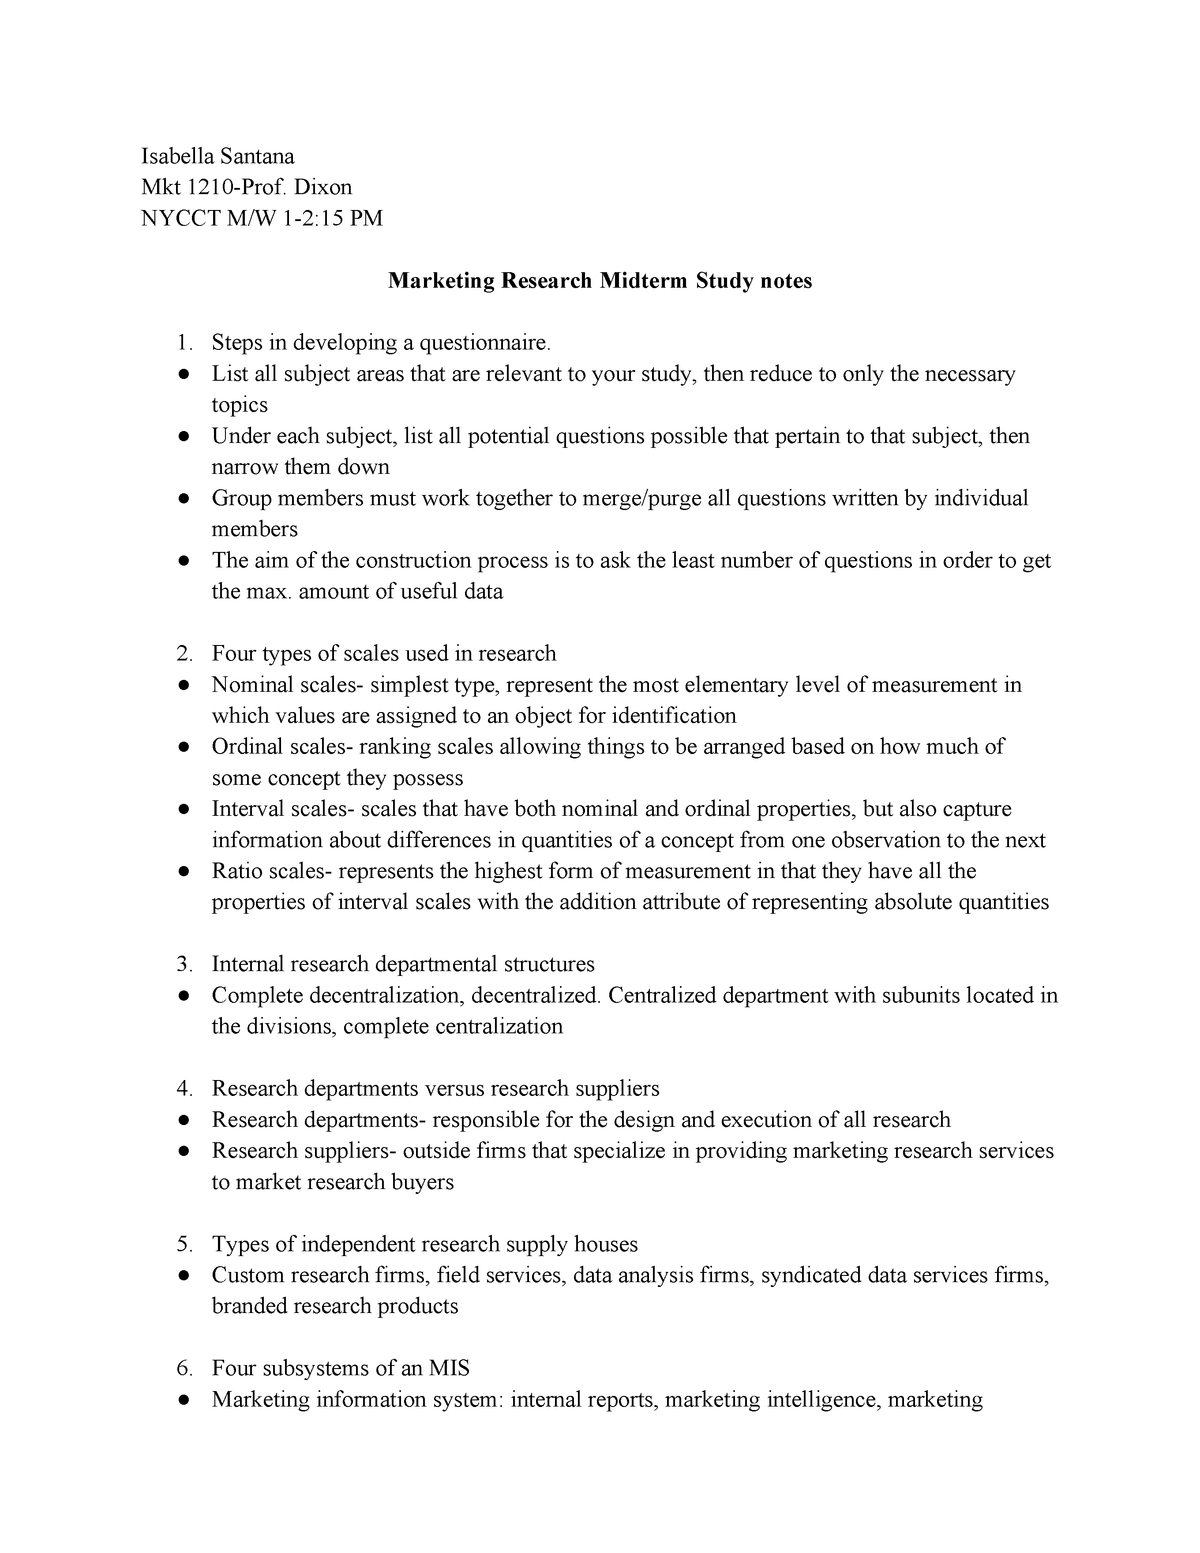 Midterm Spring 2018, questions and answers - MKT 1210 - StuDocu